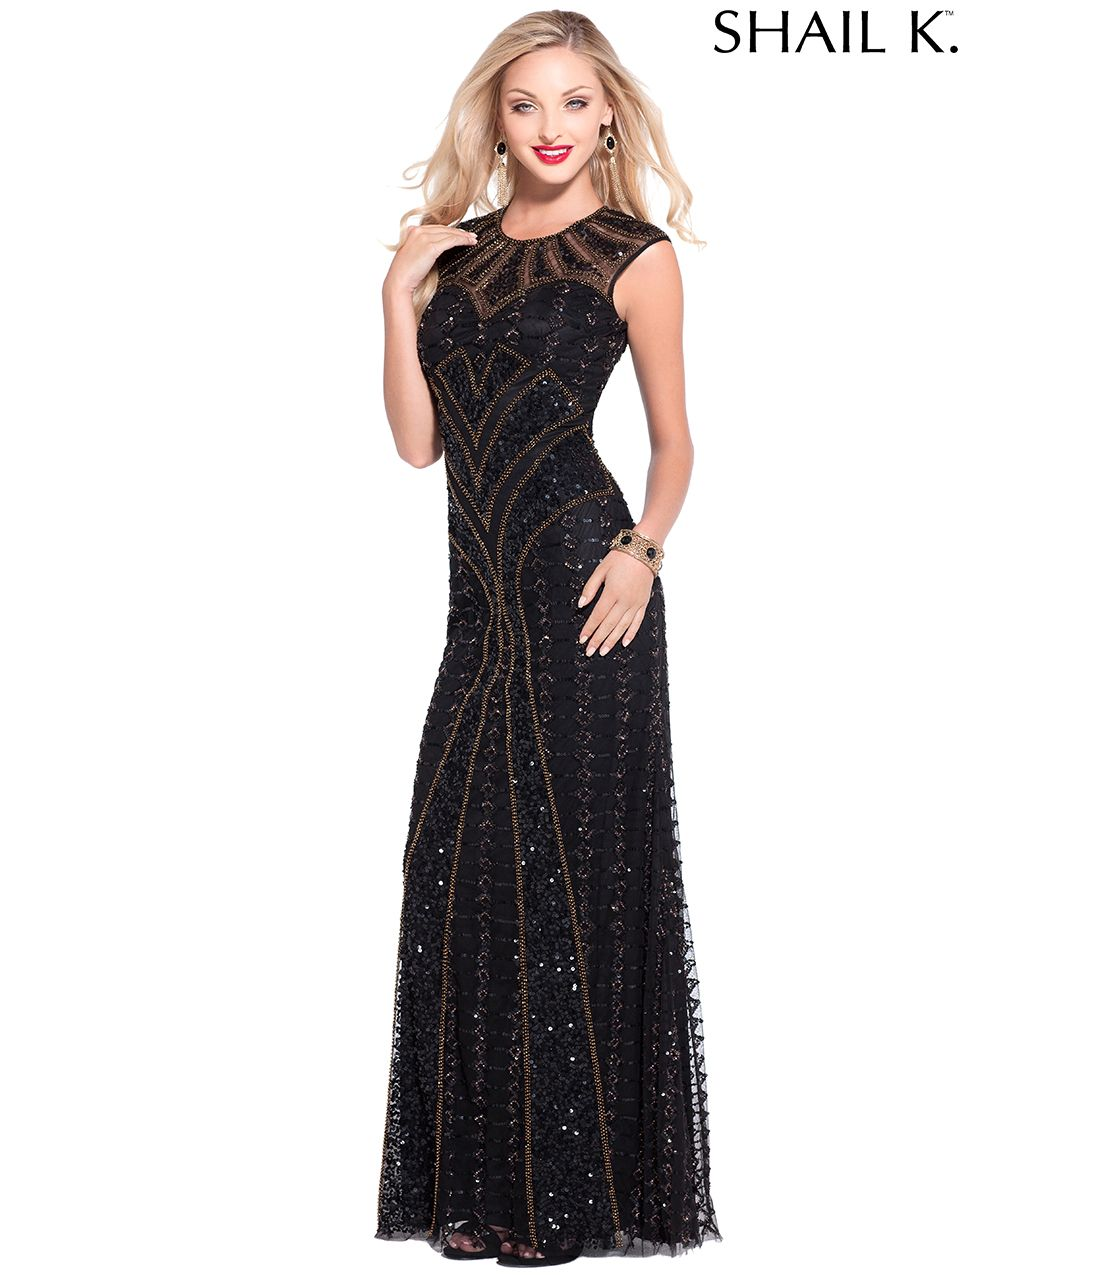 100 + Great Gatsby Prom Dresses for Sale | Prom, Gatsby and 1920s style